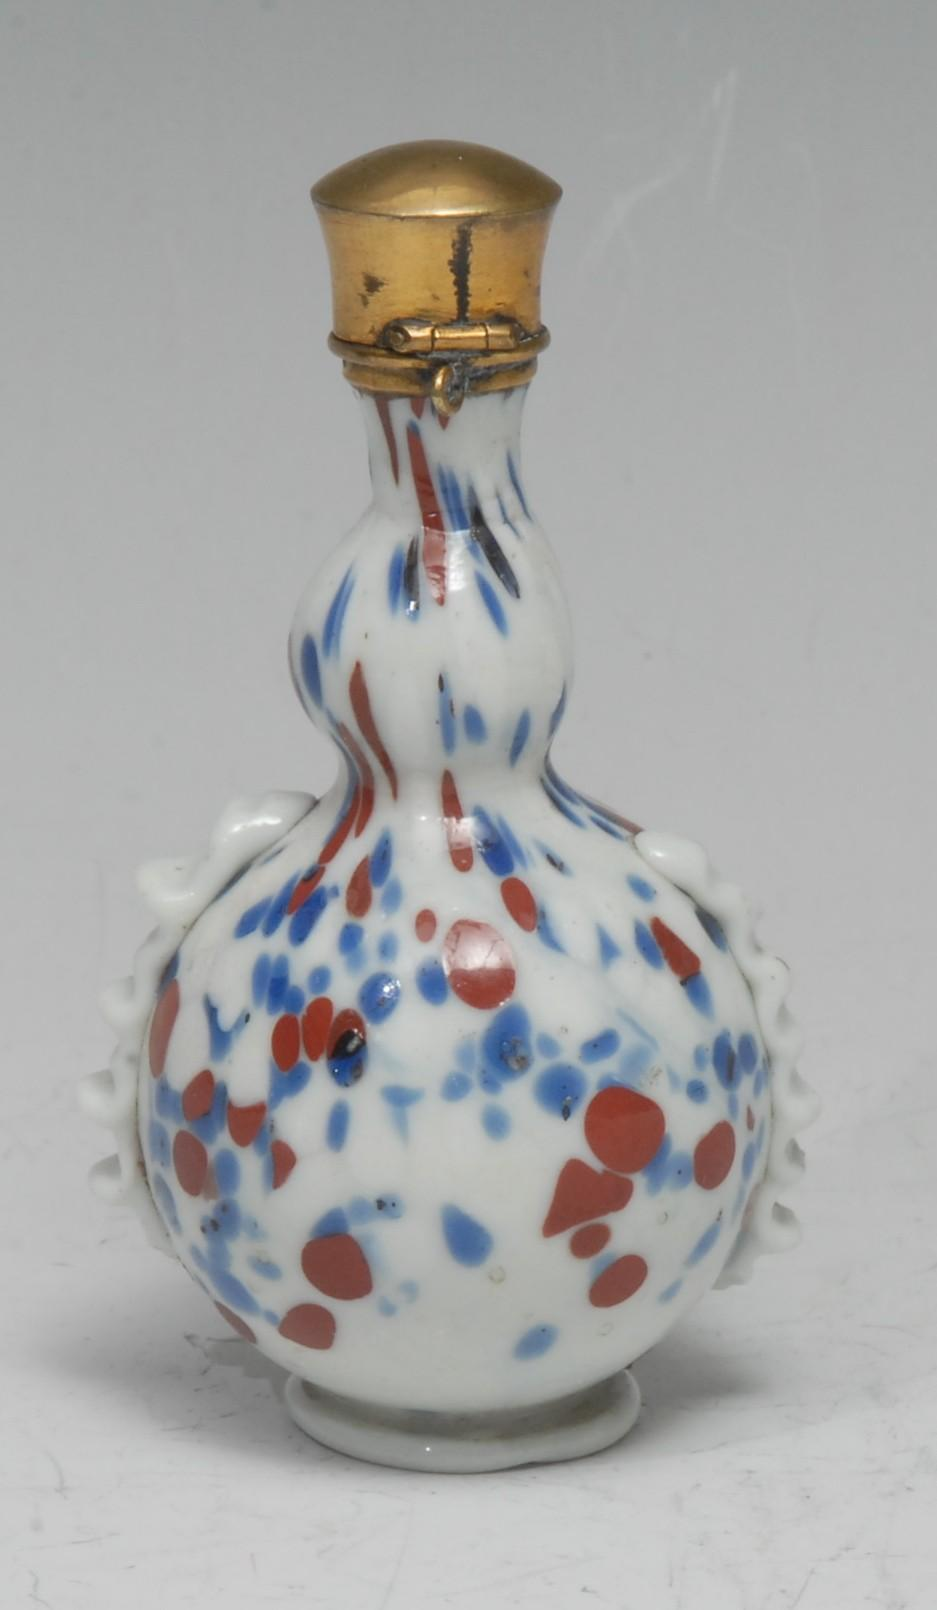 An early 18th century Continental opaque glass gourd-shaped flask or phial, possibly Venetian, the